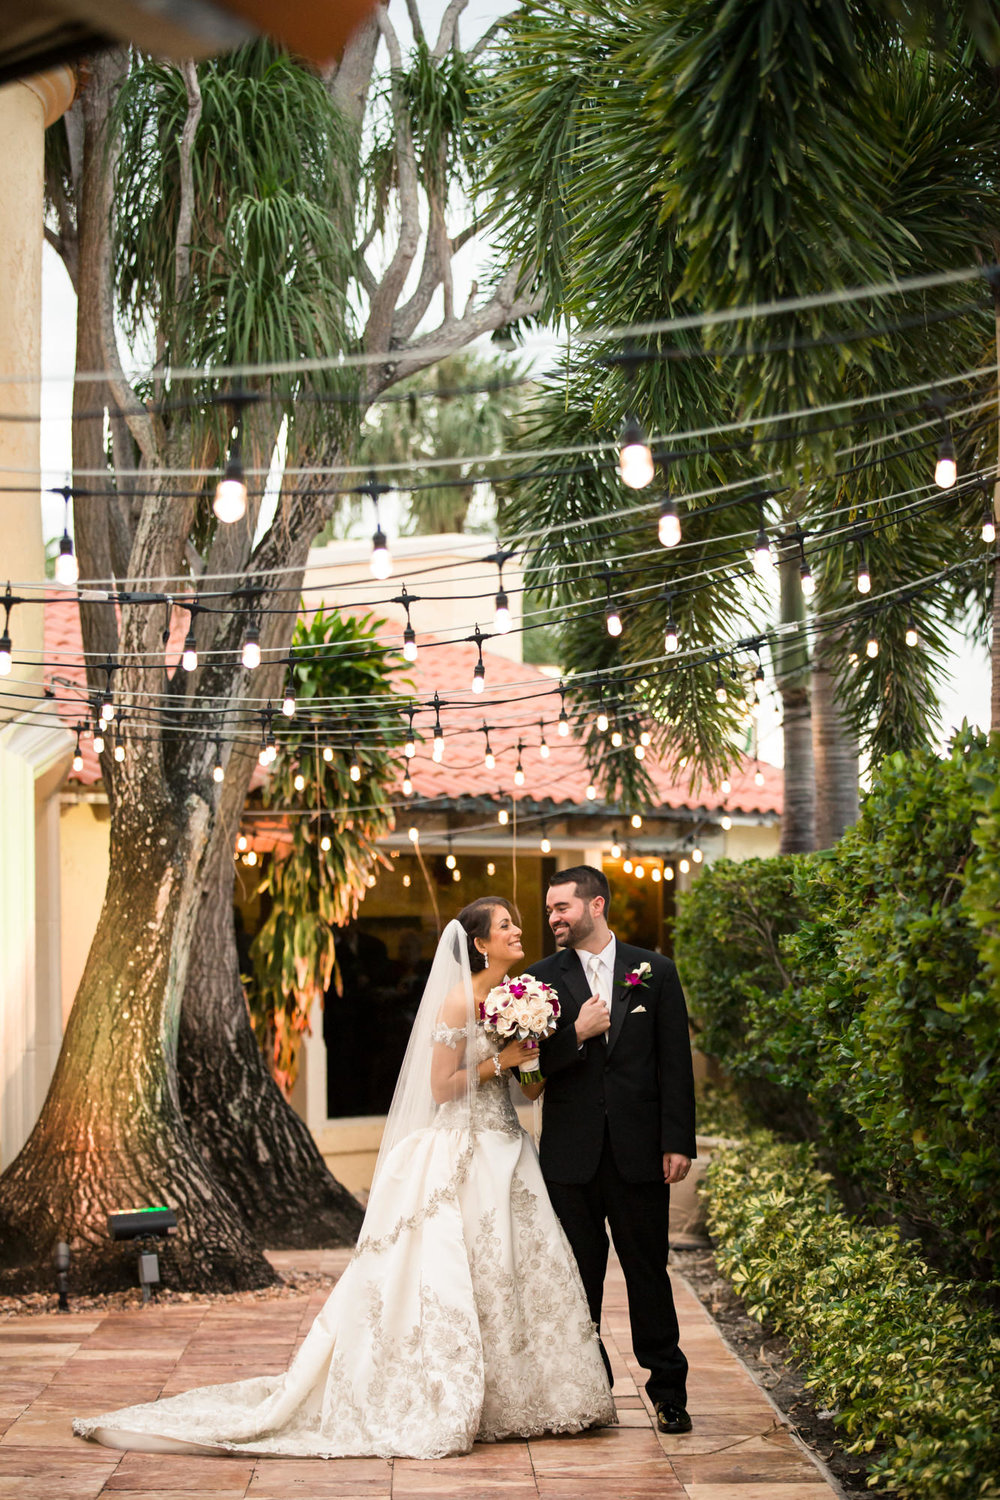 Benvenuto_Wedding_catholic_Florida_Bride-Groom-93.jpg